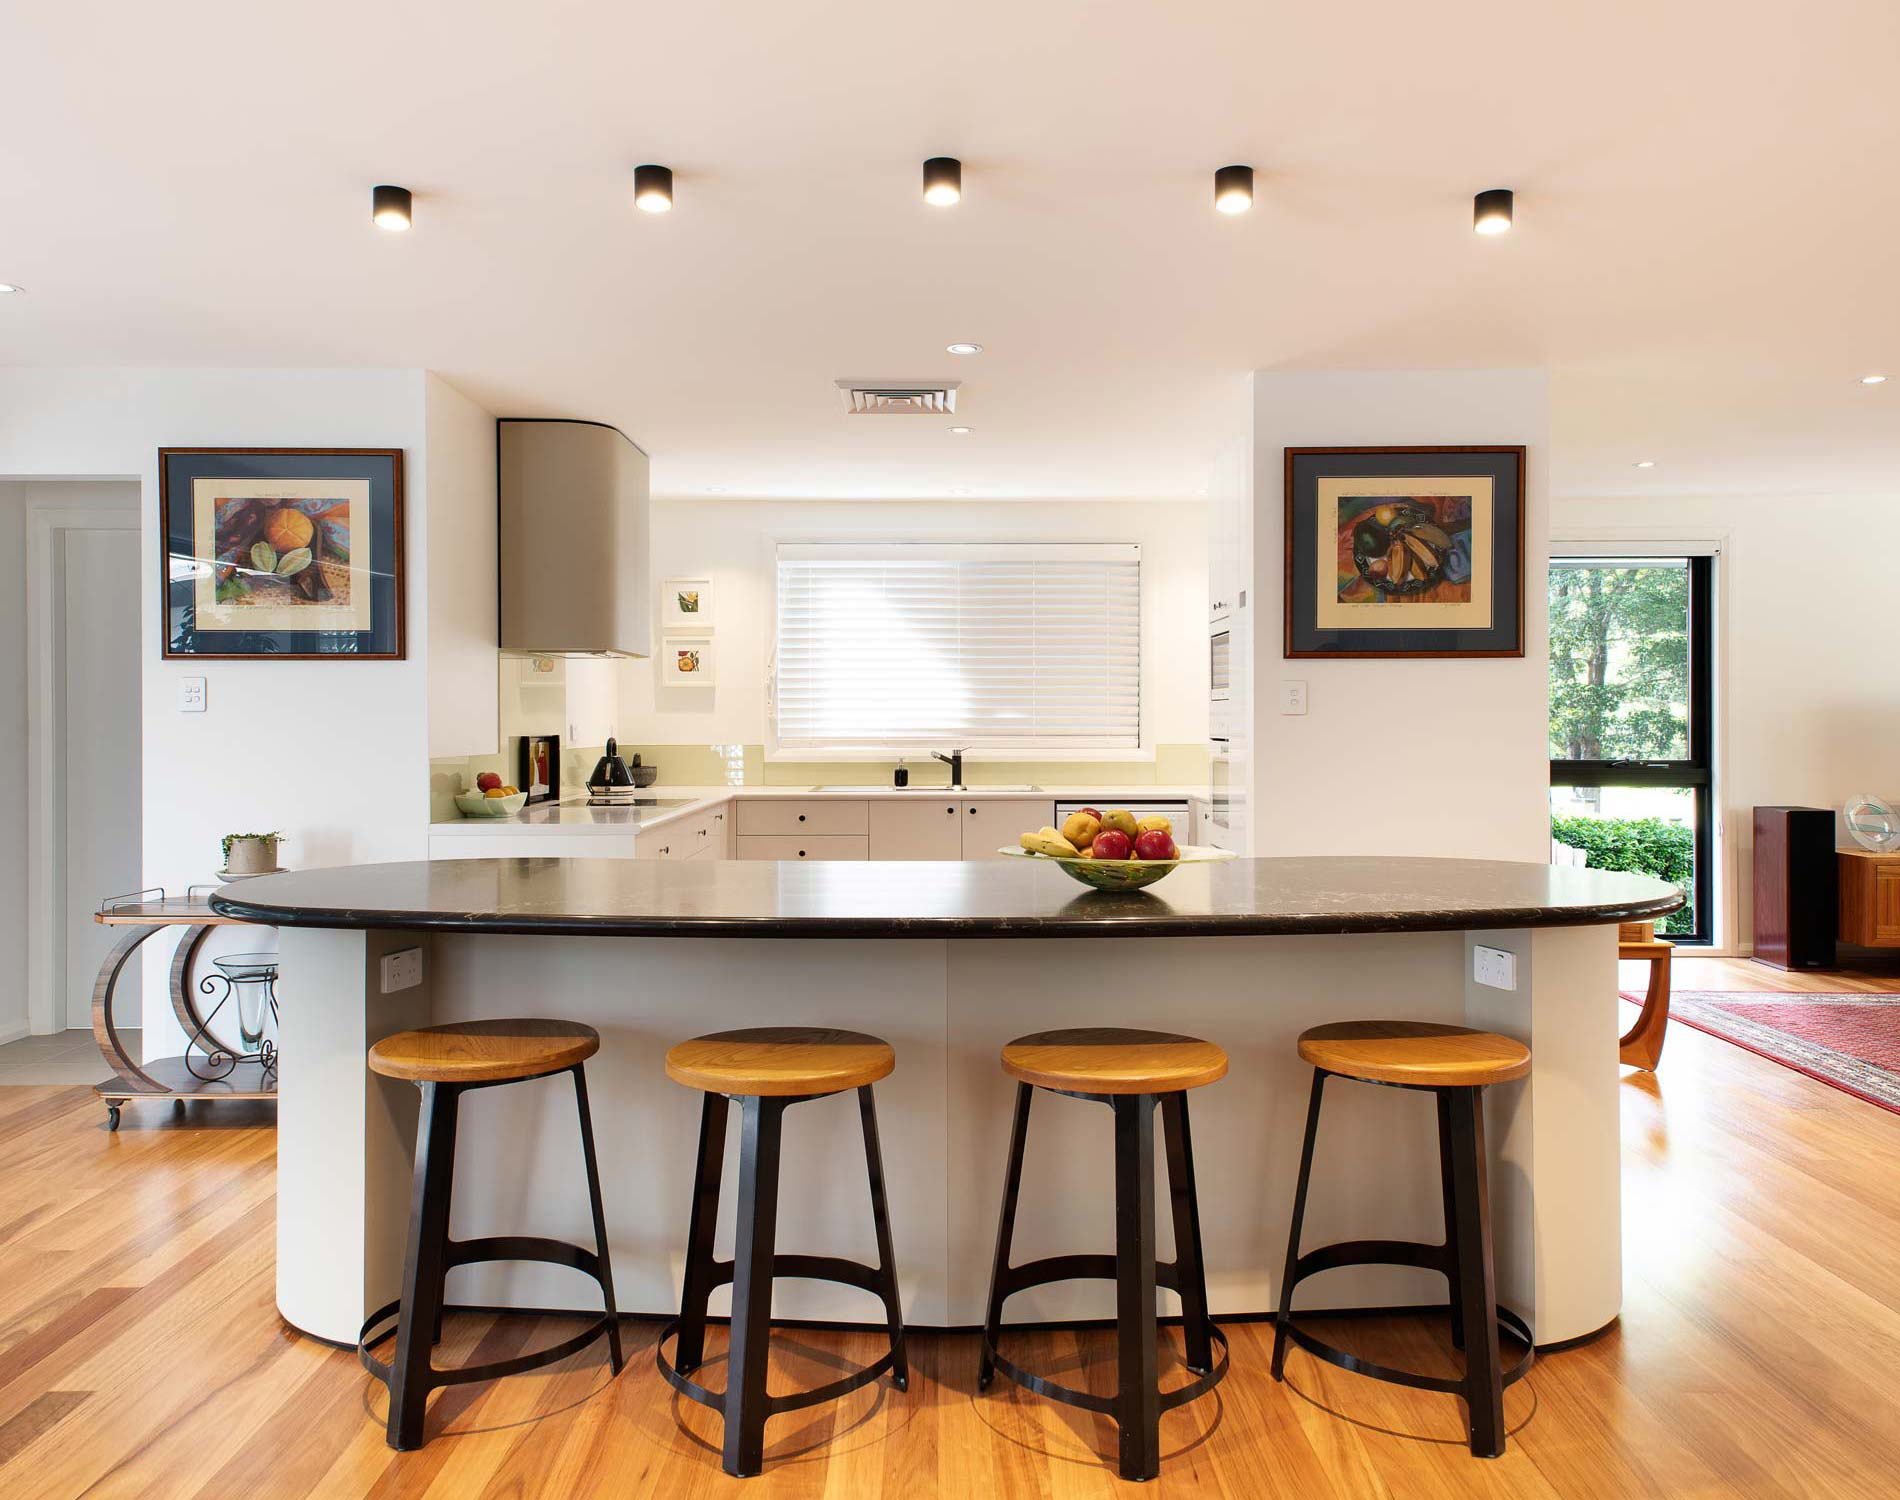 Beecroft Home Extension and Renovation Kitchen